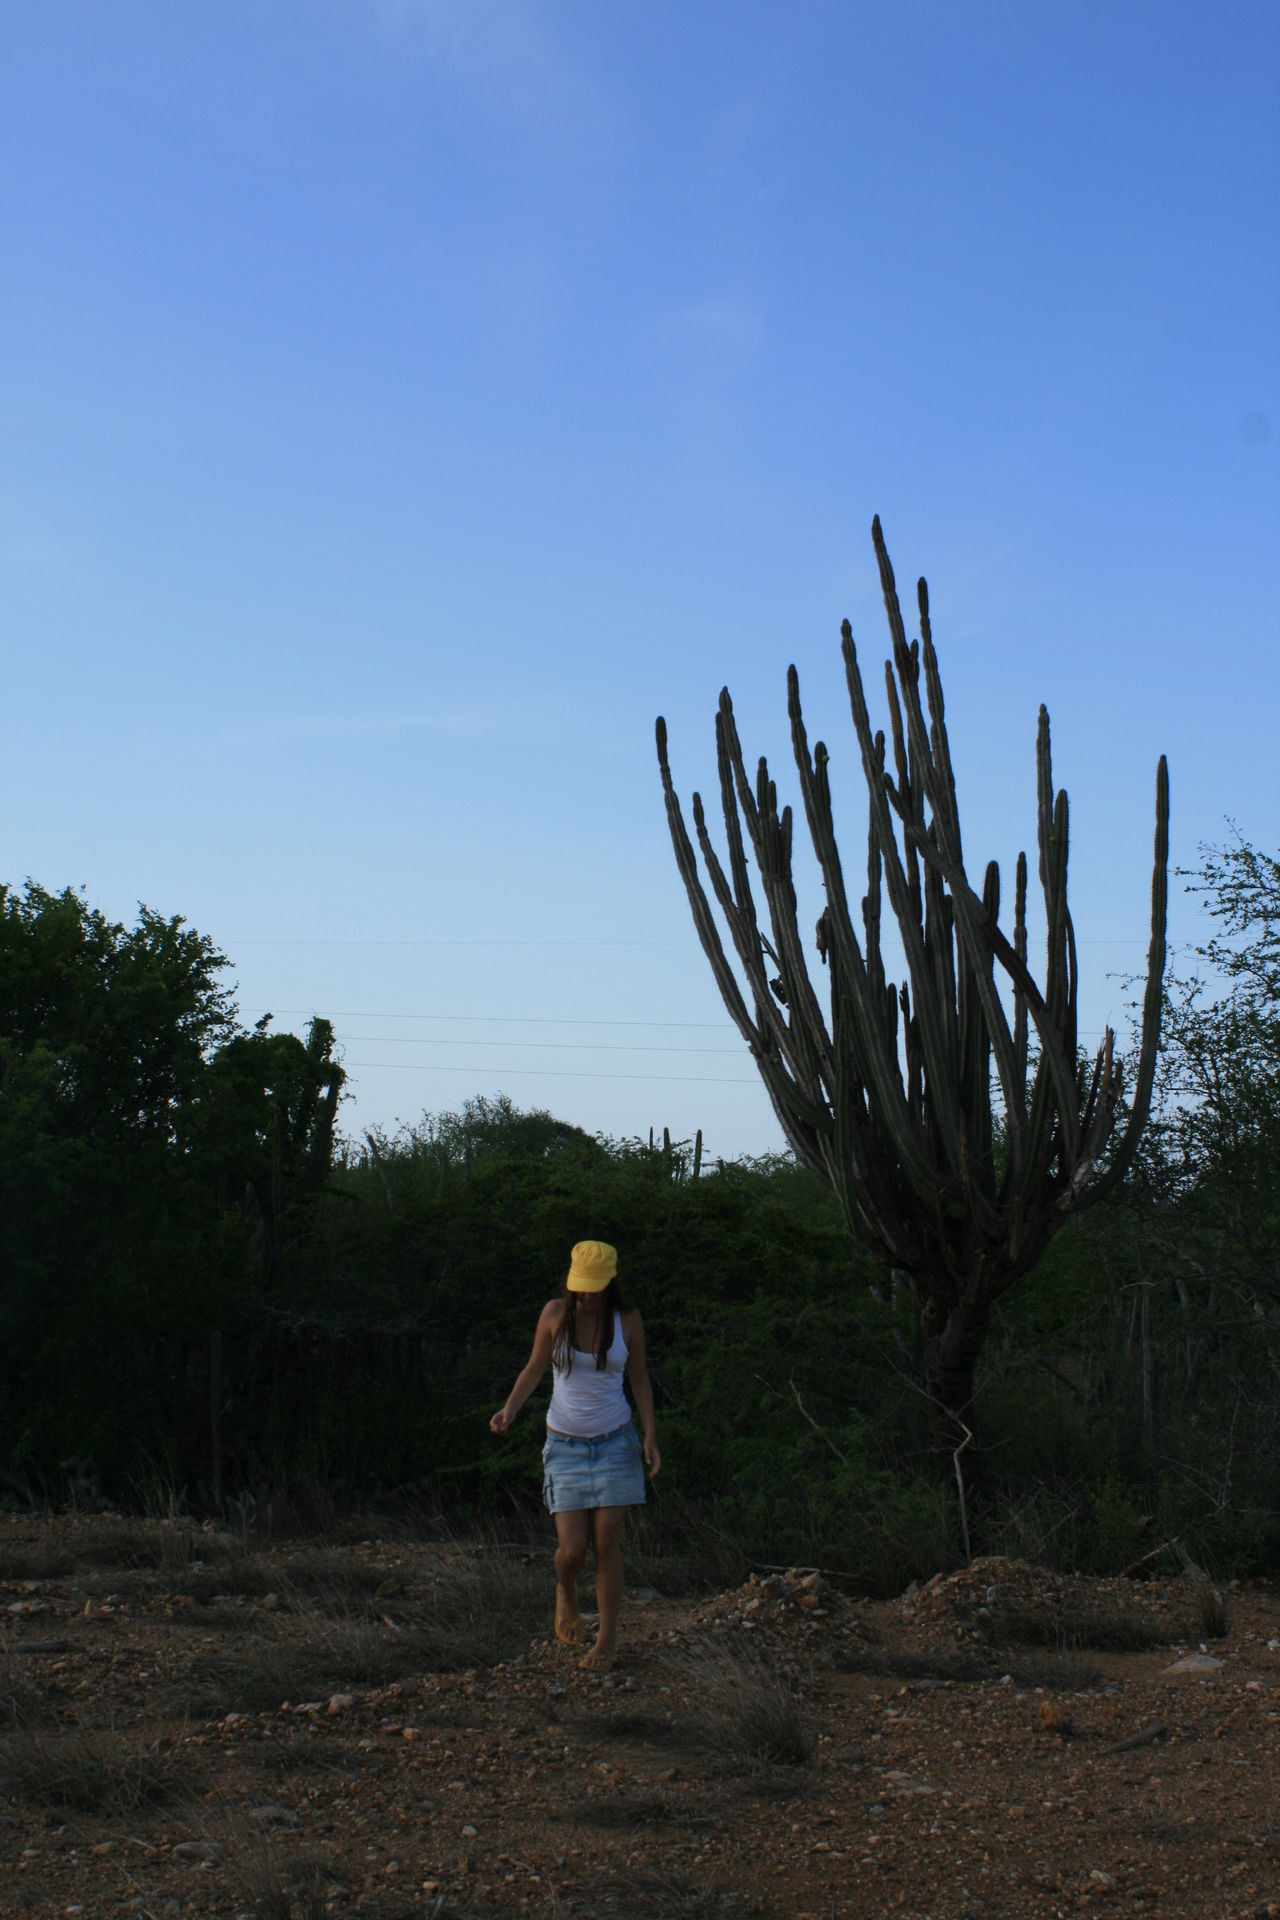 Big Cactus Cactus Casual Clothing Clear Sky Field Full Length Giant Cactus Landscape Leisure Activity Lifestyles Margarita Island Margarita, Venezuela Men Nature Rear View Sky Travel Travel Photography Traveling Hat